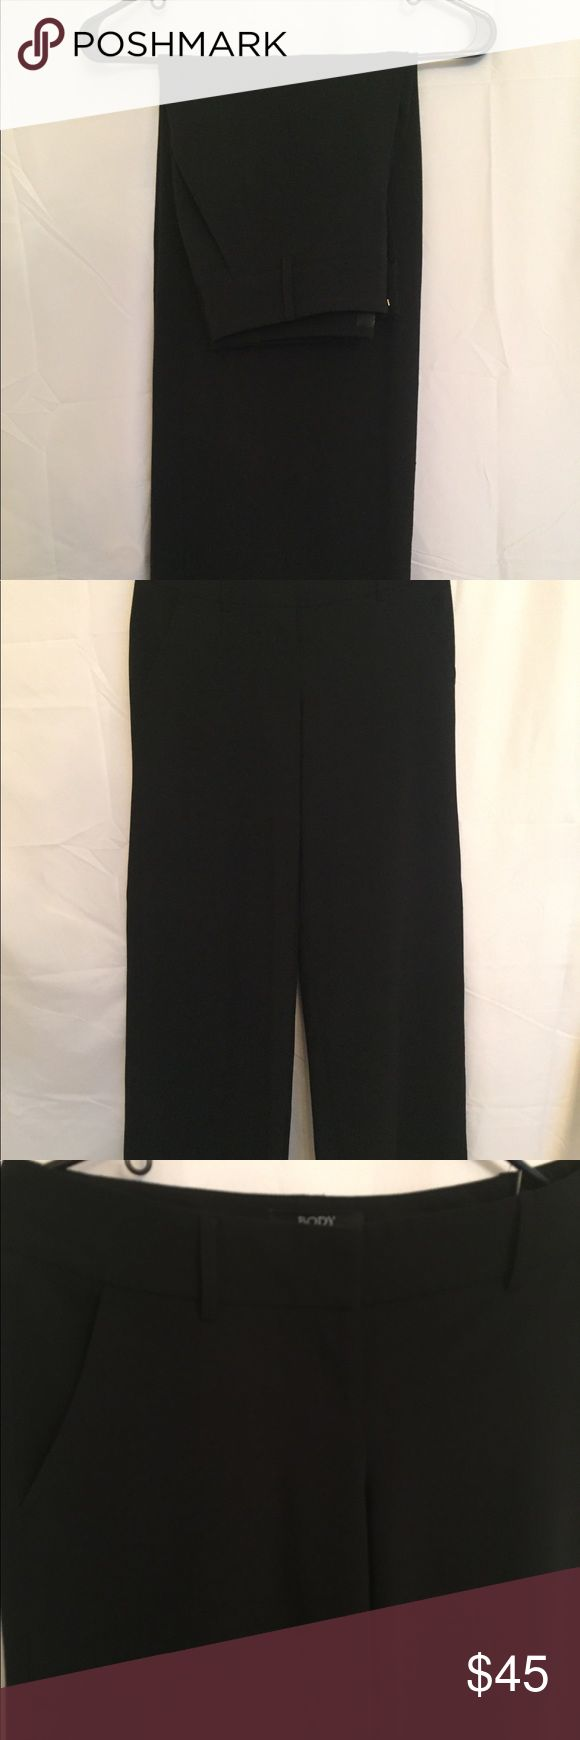 Women's trousers Body by Victoria's Secret sz 4 EUC Women's Body by Victoria Secret in black, size 4. These are a wide leg, tall trouser. Dry clean only. Victoria's Secret Pants Trousers